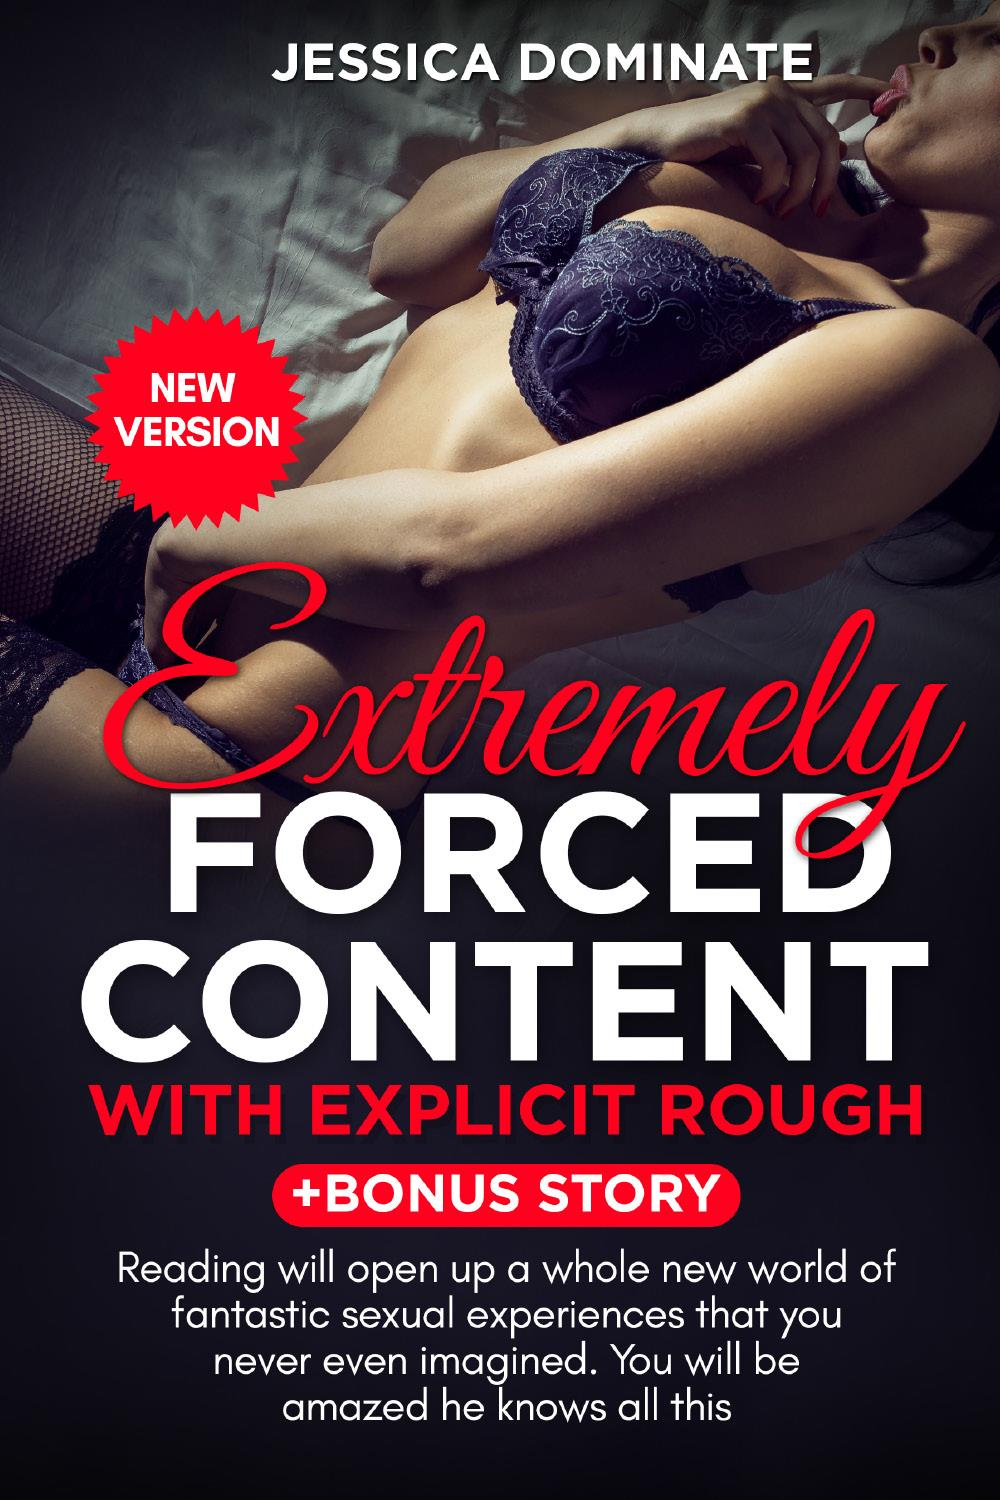 Extremely Forced Content With Explicit Rough + Bonus Story. Reading will open up a whole new world of fantastic sexual experiences that you never even imagined. You will be amazed he knows all this (New Version)